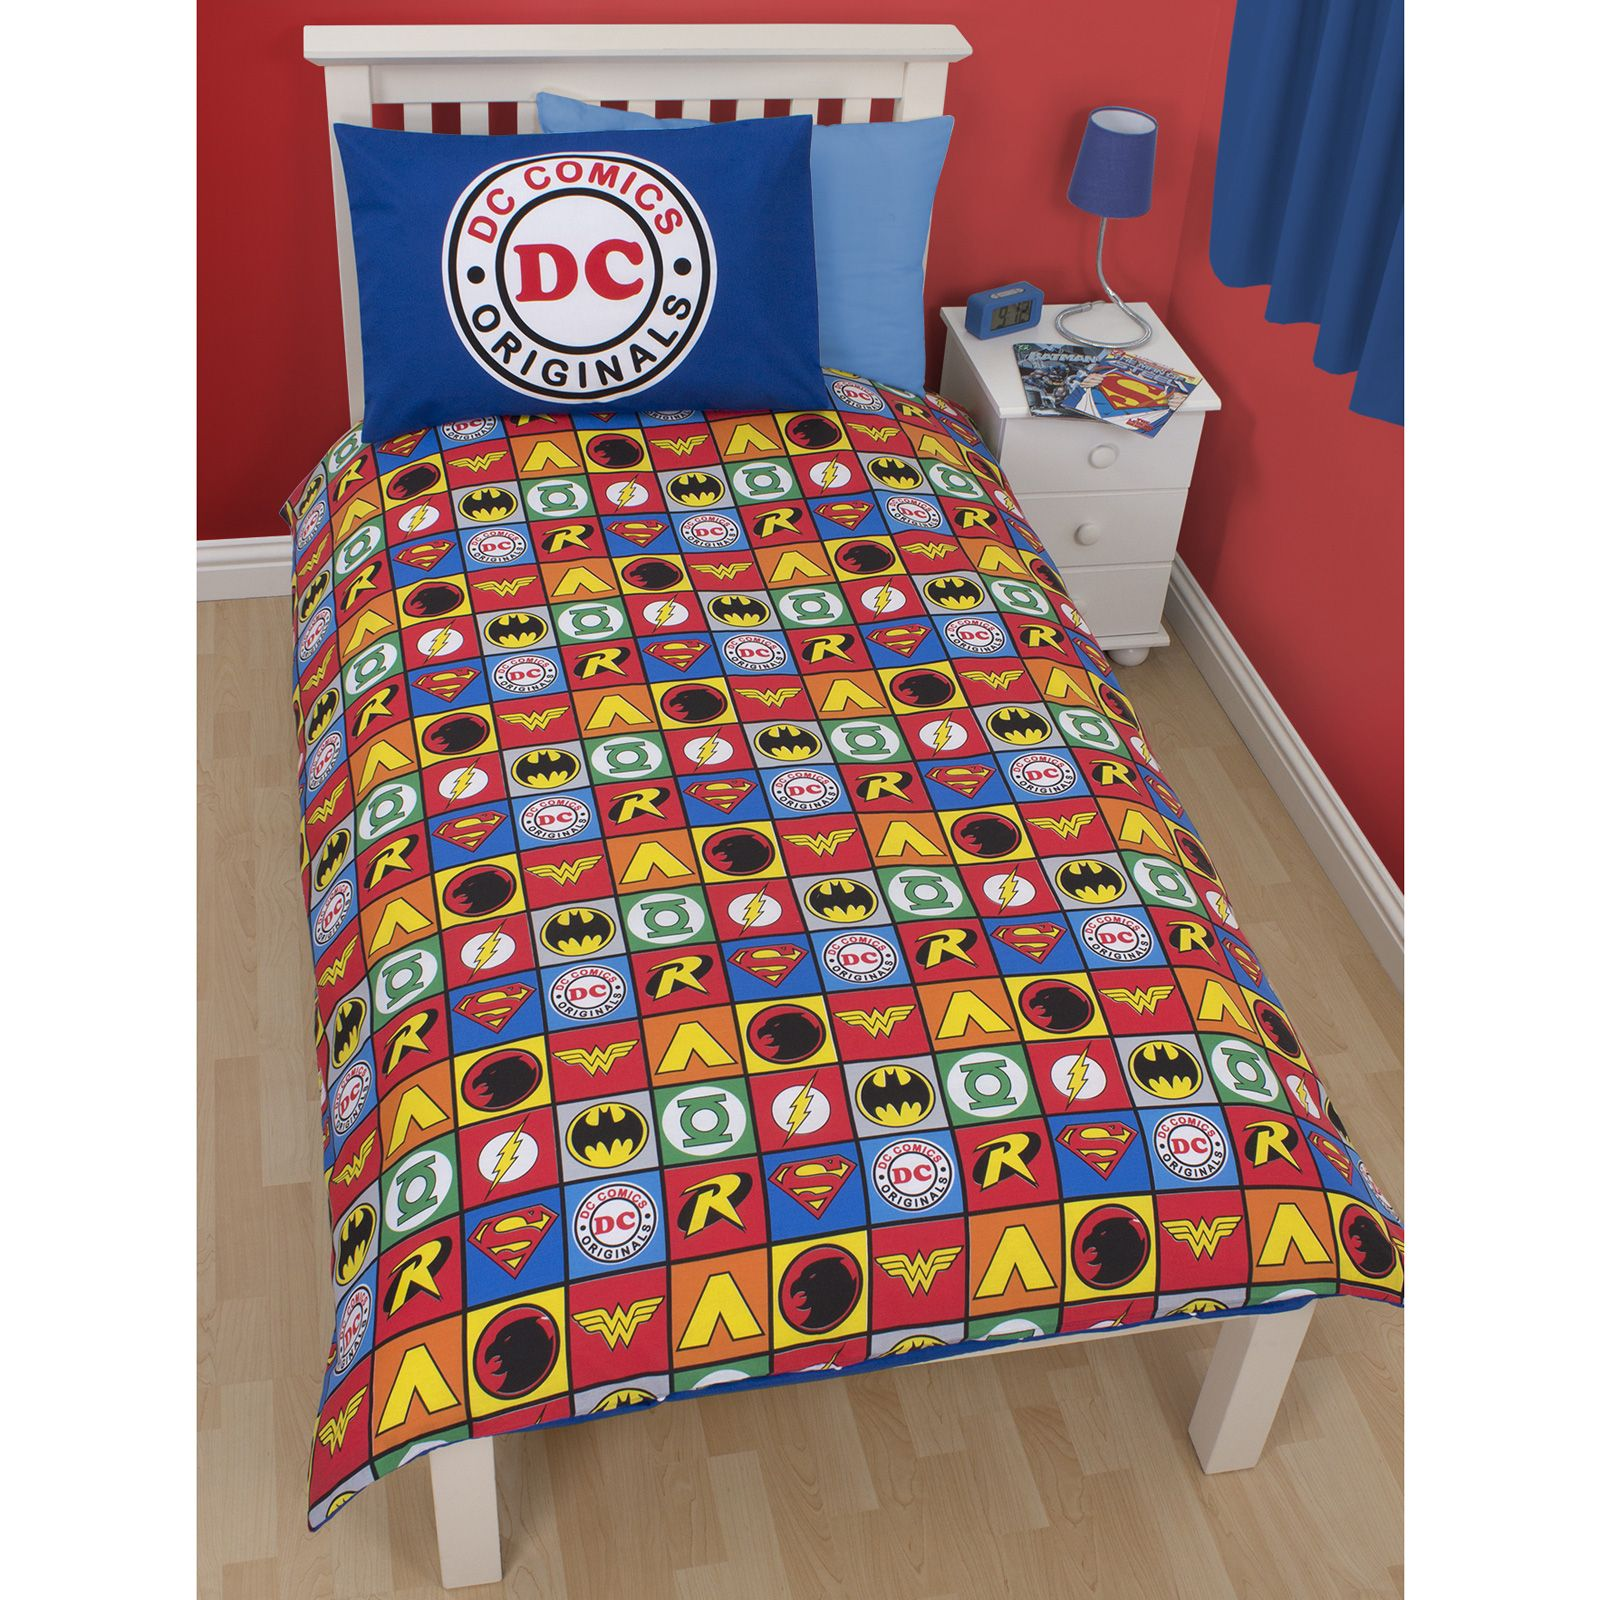 Dulux Marvel Avengers Bedroom In A Box Officially Awesome: DC COMICS ORIGINALS COLLECTION SINGLE DUVET COVER SET